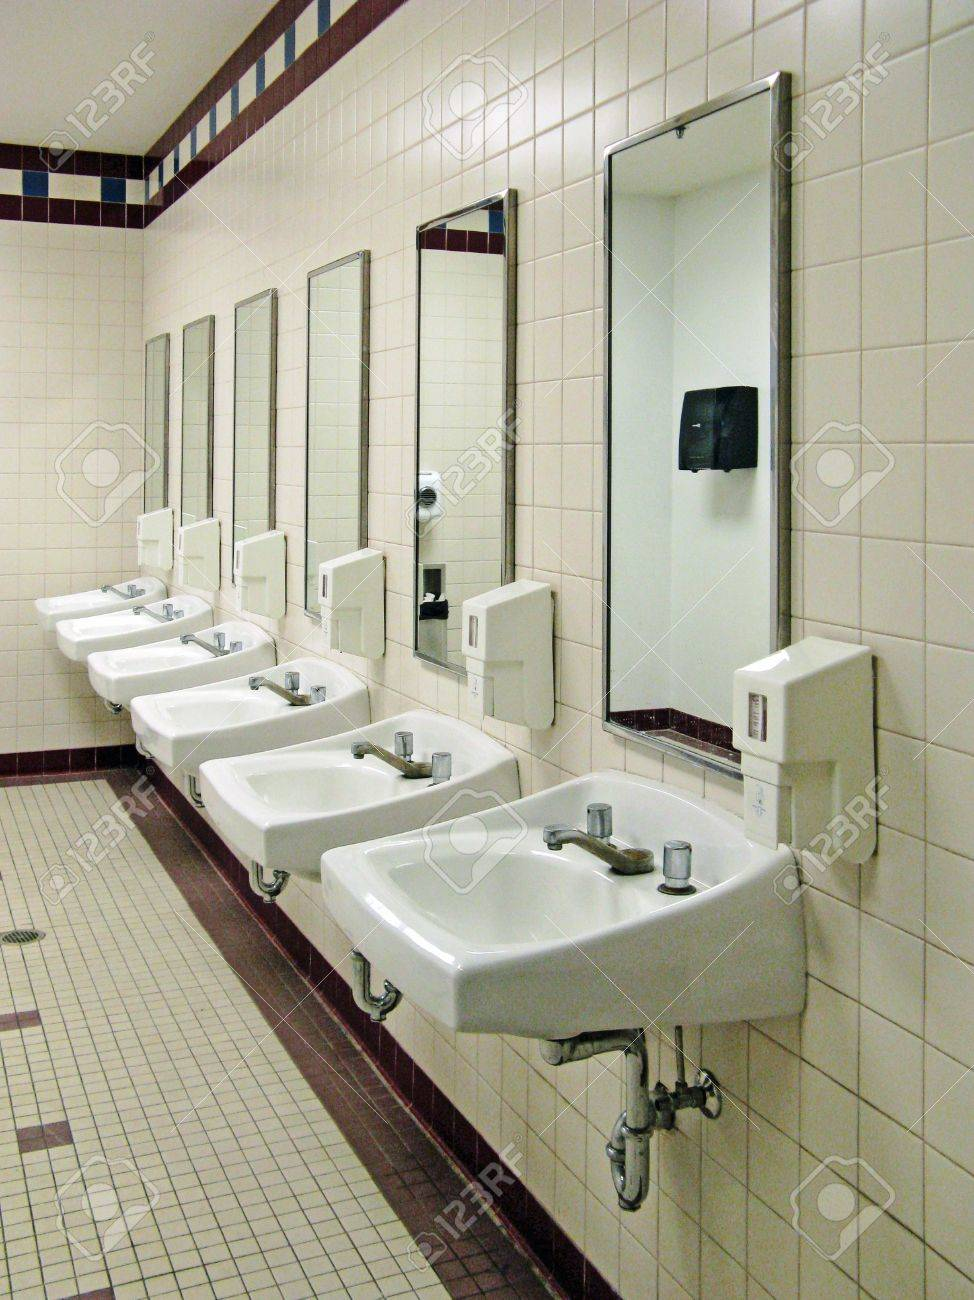 Public Bathroom Sink sinks in a public restroom stock photo, picture and royalty free